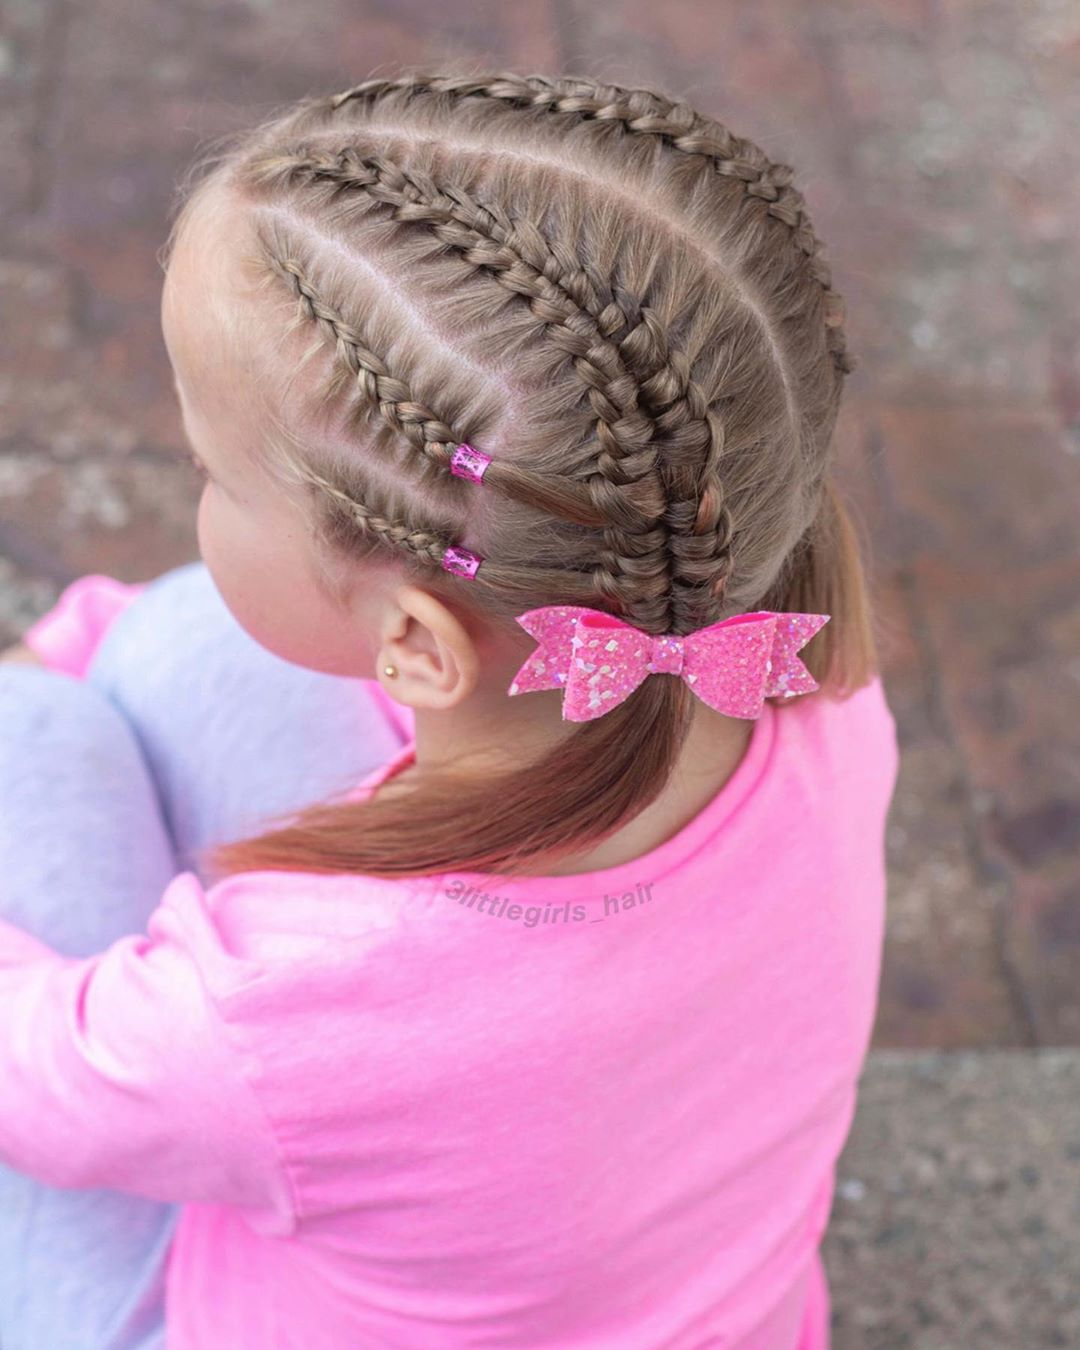 Suspendedinfinitybraid Pigtails For Sum Toddlerhairstyles - Hairstyles For Girls